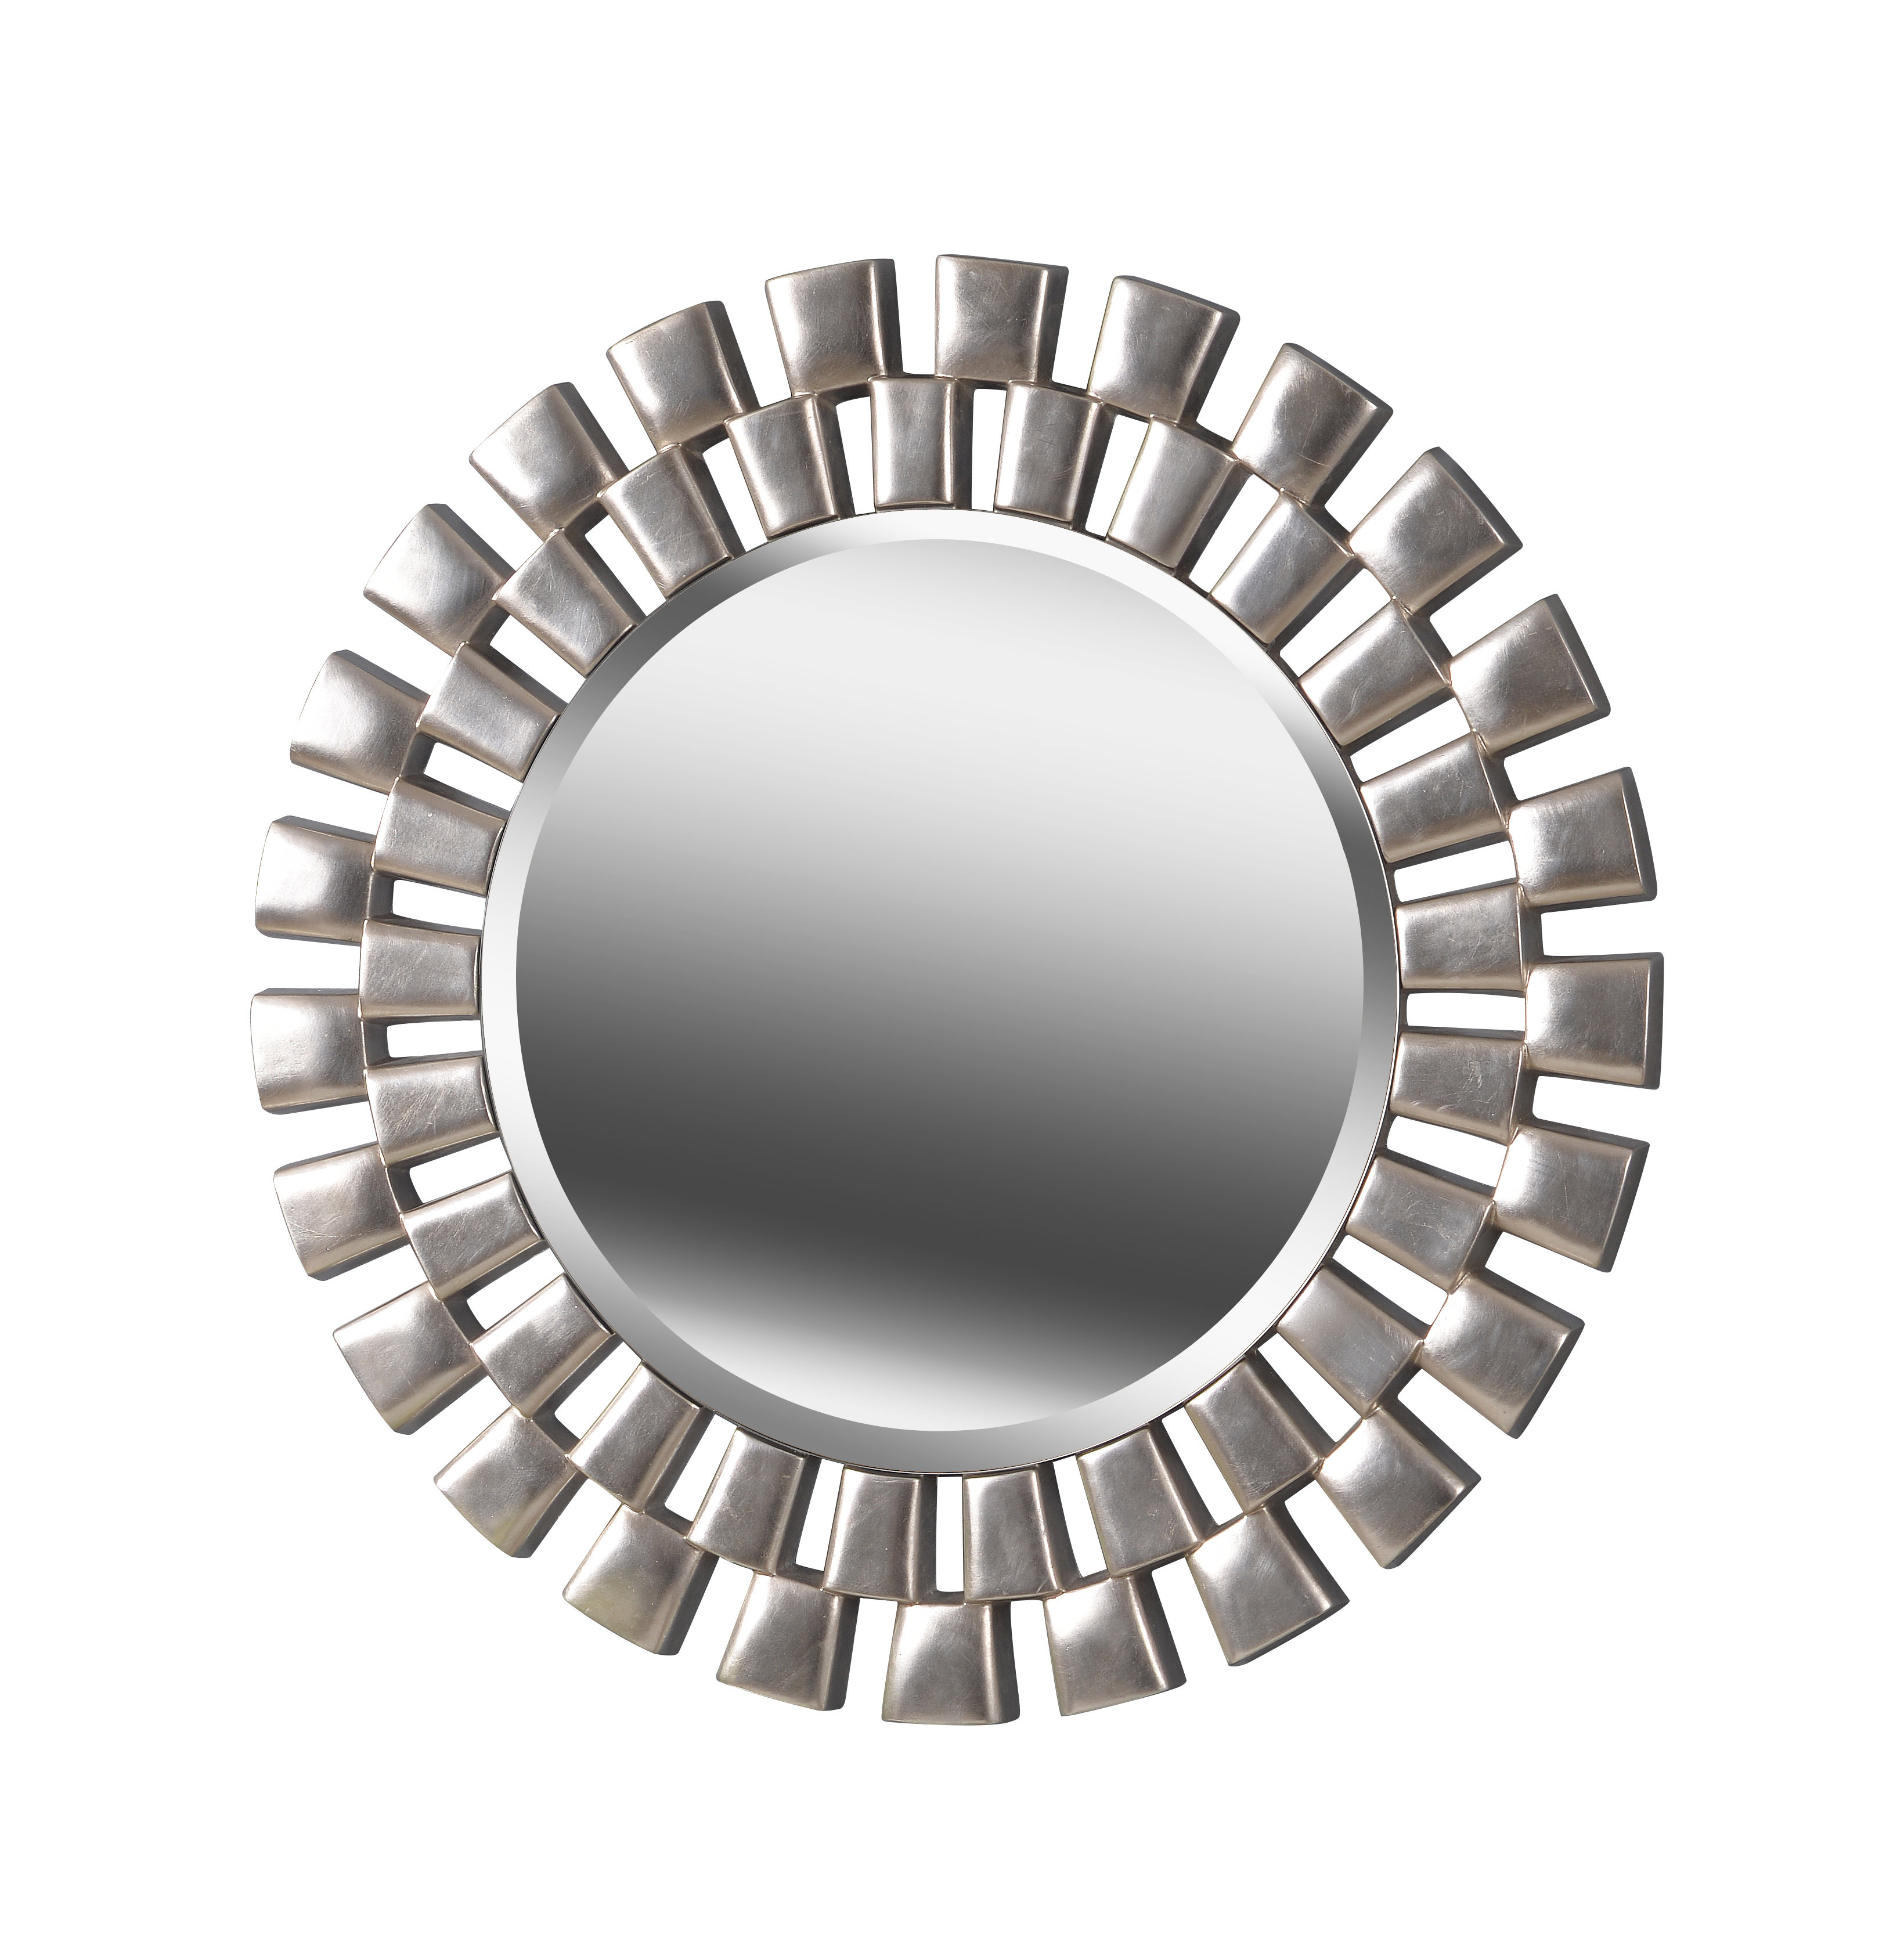 Glam Beveled Accent Mirror Intended For Most Current Tata Openwork Round Wall Mirrors (View 16 of 20)